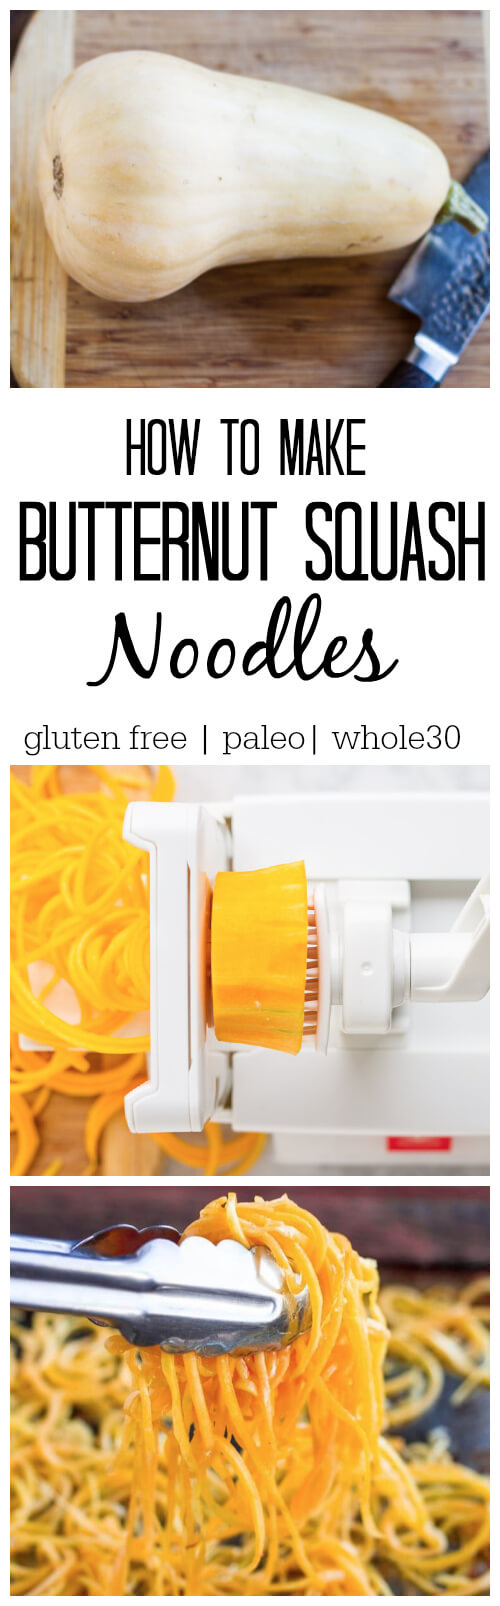 How to Make Butternut Squash Noodles - www.savorylotus.com